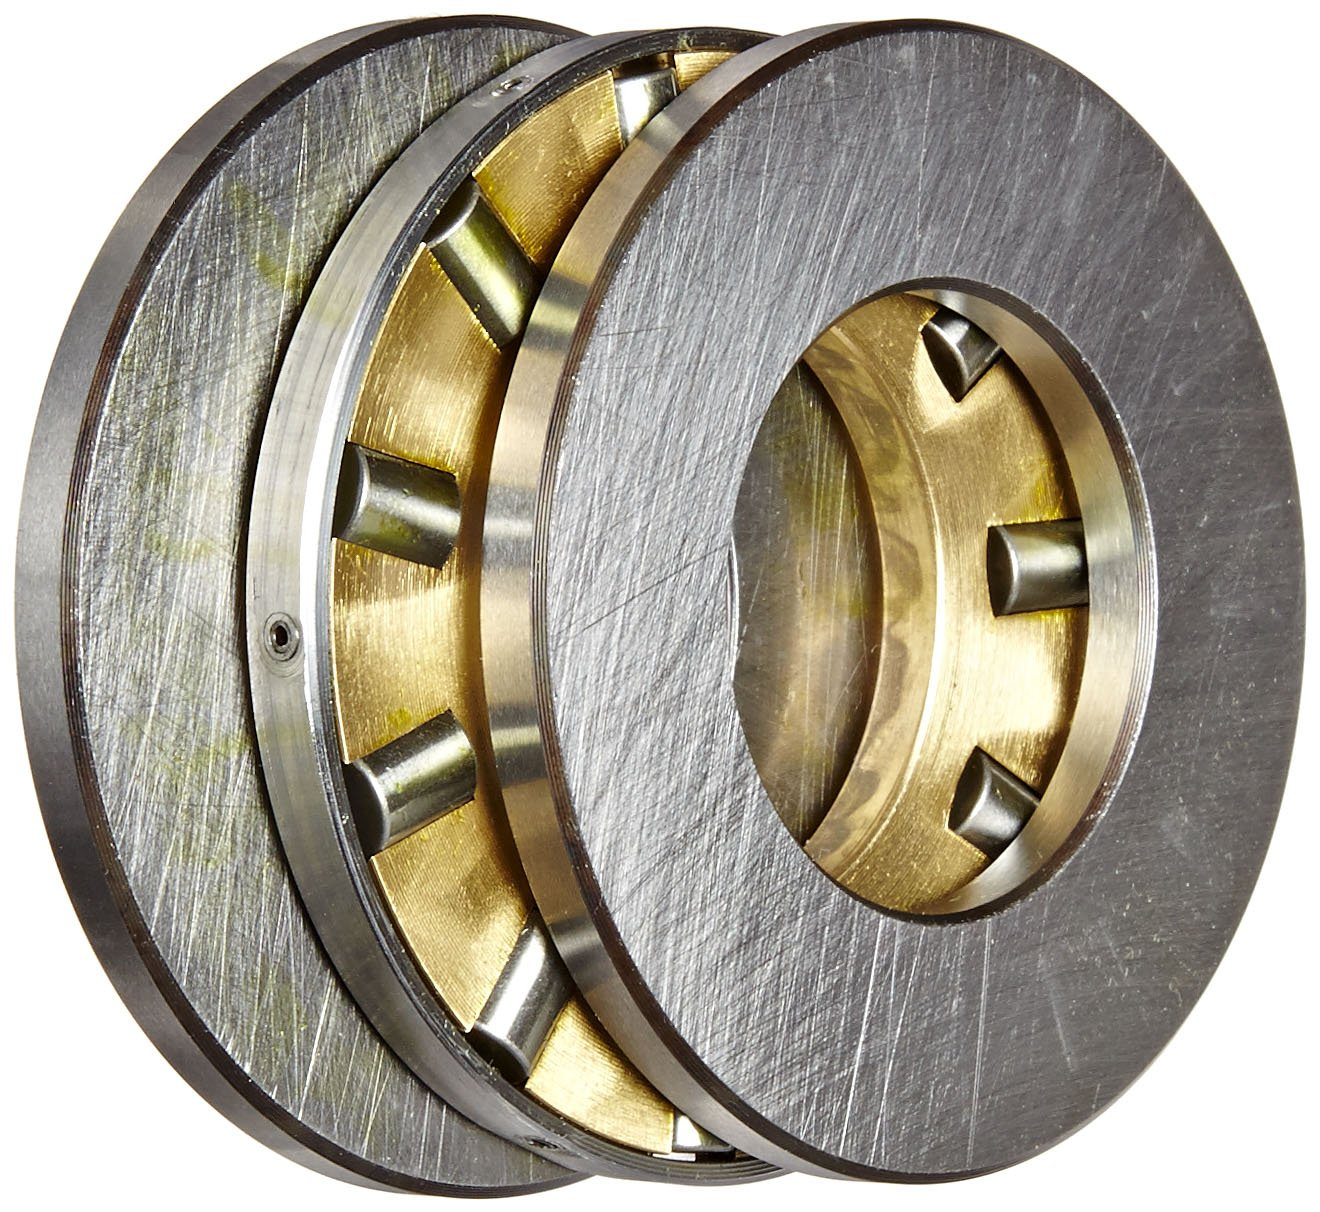 Standard Cage 9600lbf Dynamic Load Capacity 5//8 Width Single Direction Open End 4100rpm Maximum Rotational Speed 2.3440 OD 1-1//4 ID INA RTL13 Cylindrical Thrust Bearing Light Cross Section Inch 22000lbf Static Load Capacity